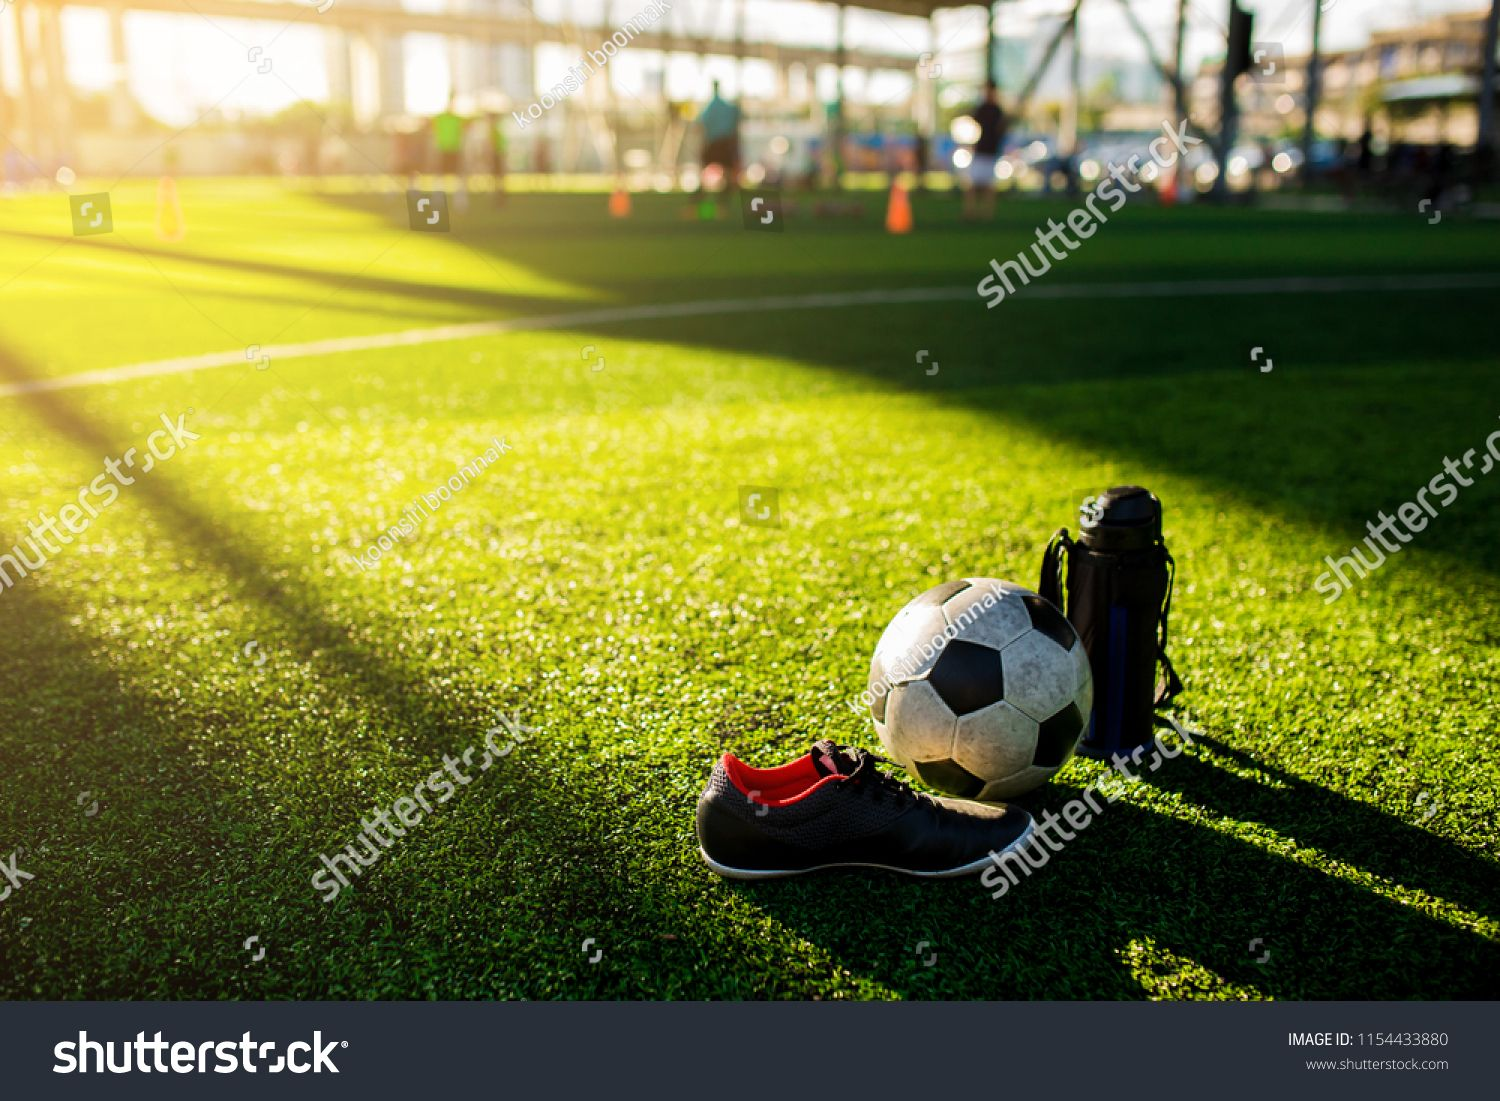 Football Cool Flask And Black Red Sports Shoes On Green Artificial Turf With Blurry Kid Soccer Player Red Sport Shoes Soccer Training Equipment Black And Red